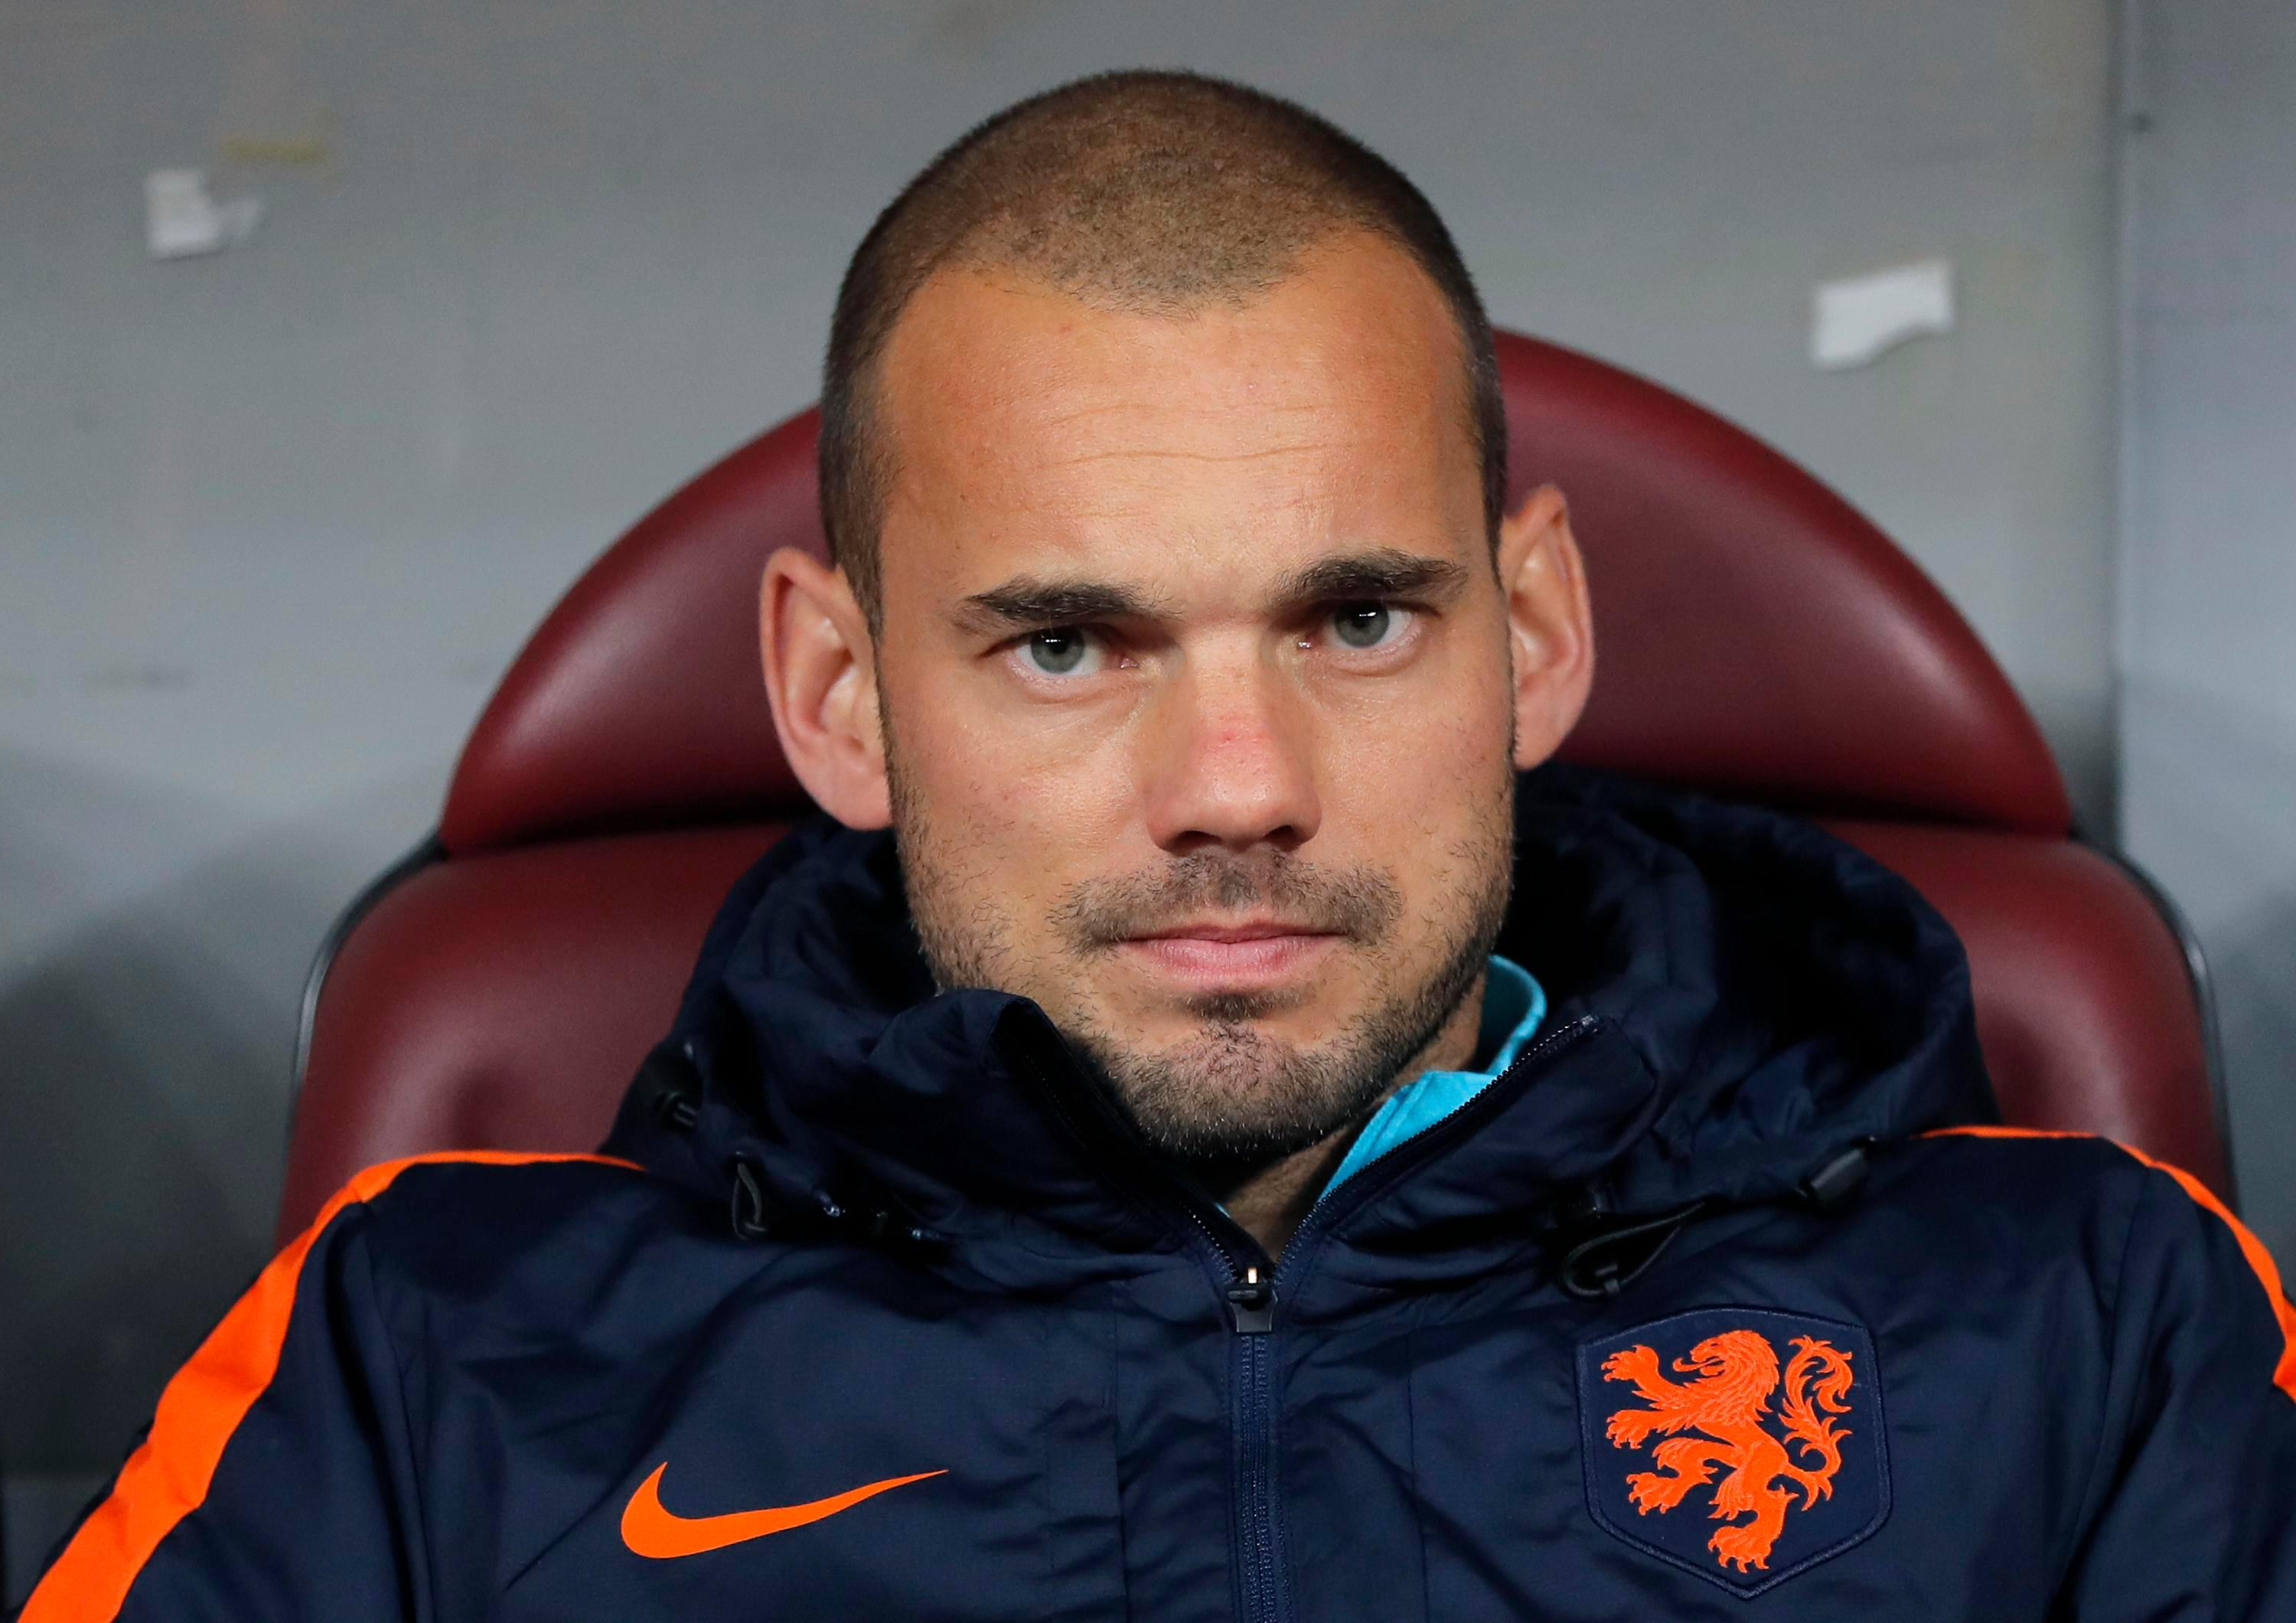 Holland legend Wesley Sneijder retires from international football after 14 years and an incredible 133 caps